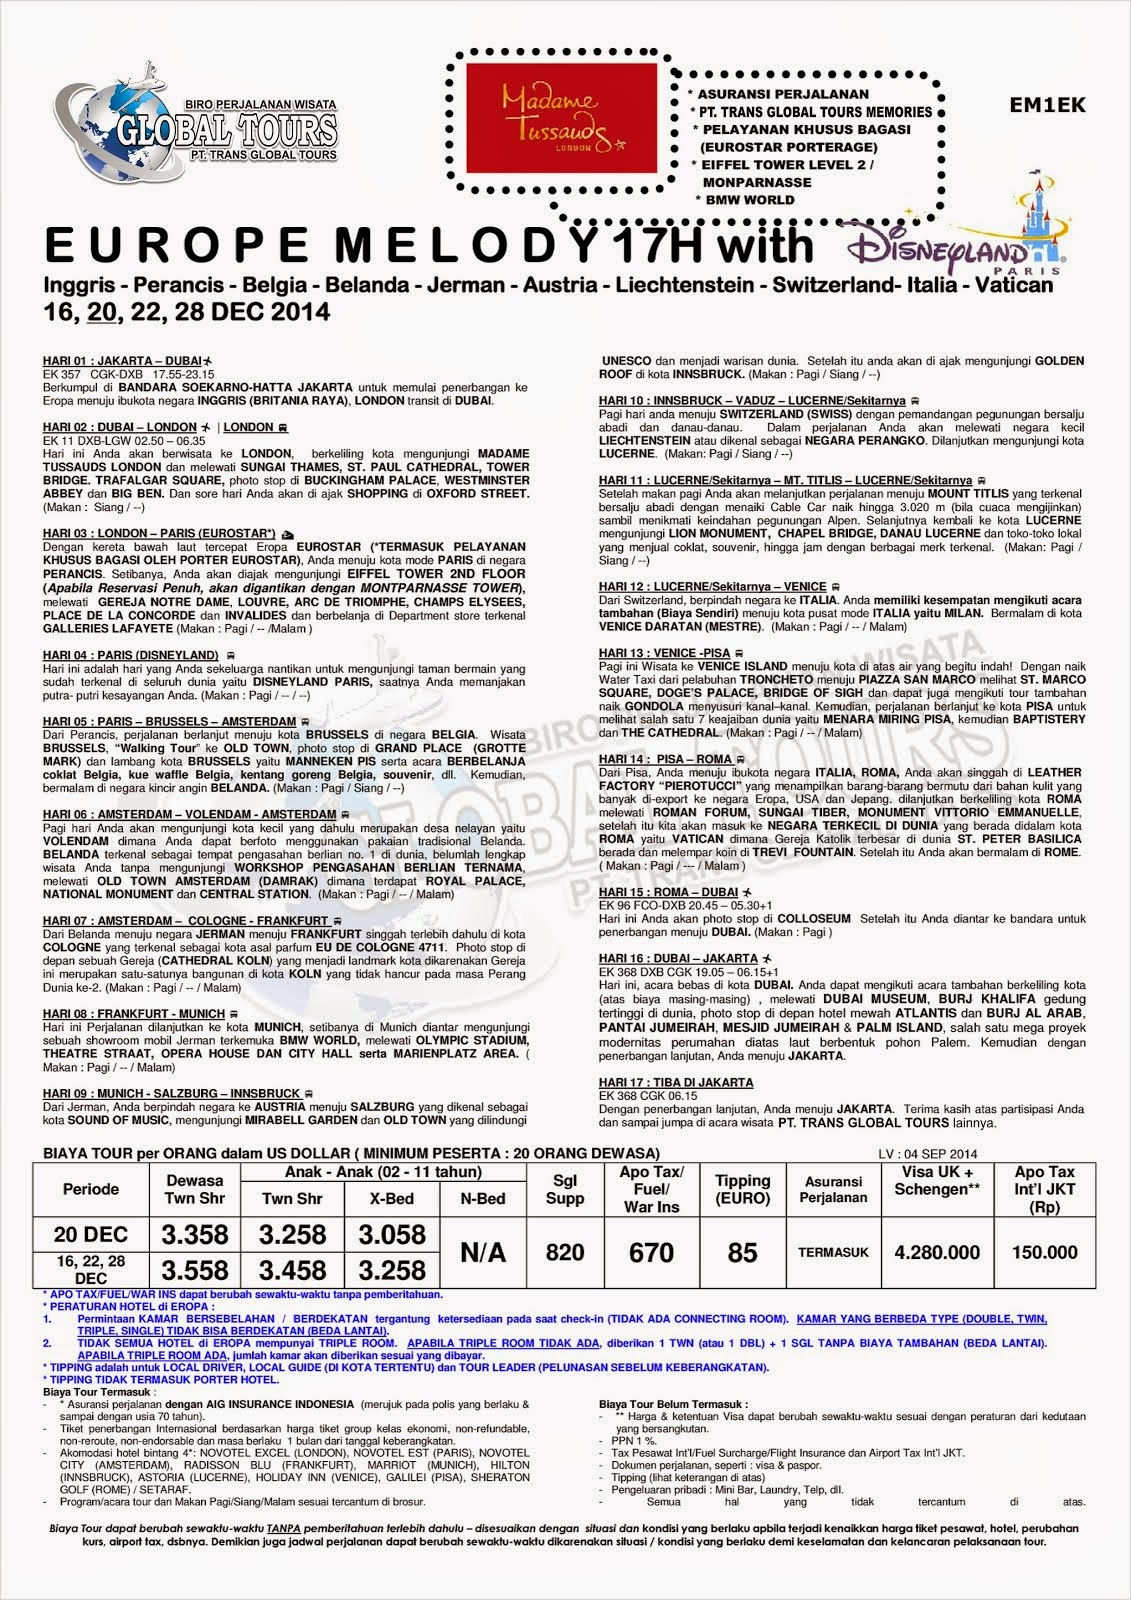 EUROPE MELODY